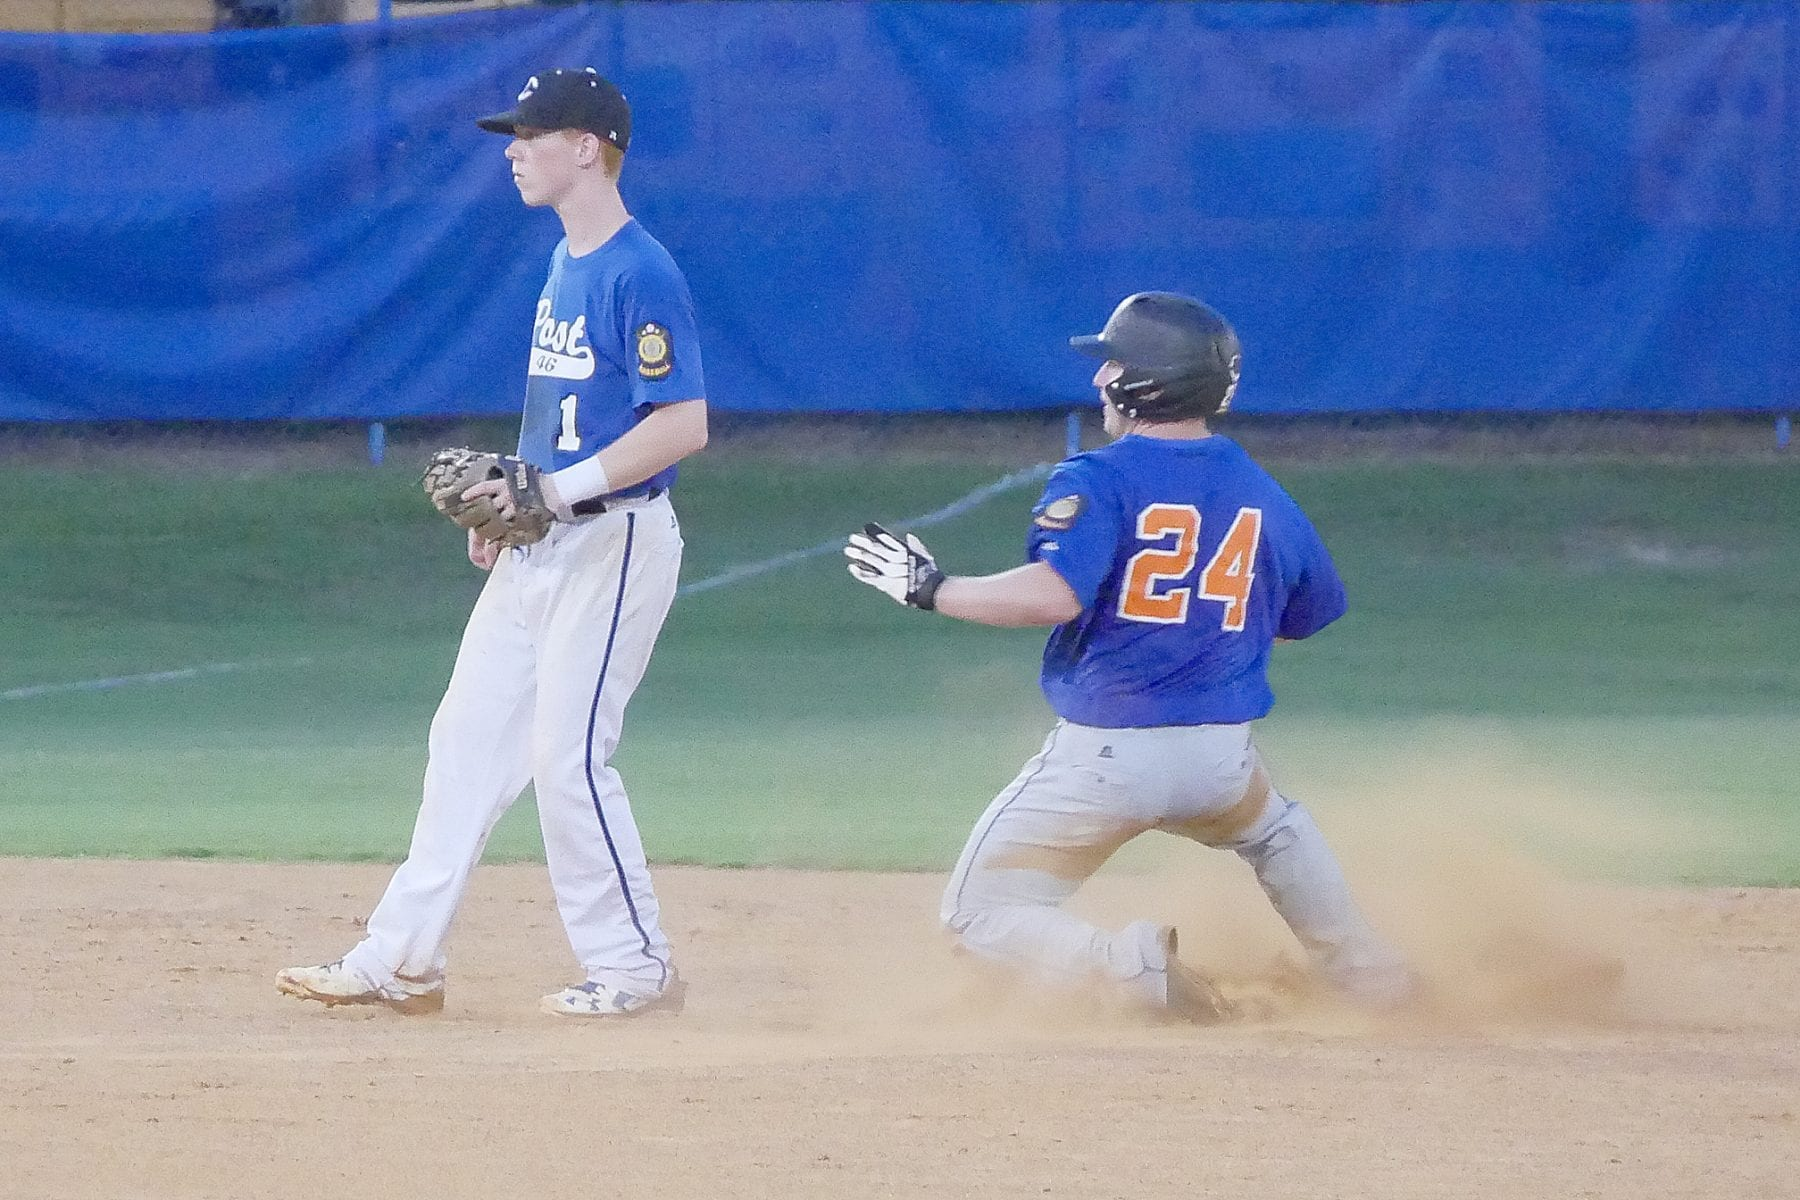 singles in rowan county Legion post 159 falls to rowan county story print elkins finished the game with a home run and a pair of singles with kellam having two singles and a triple.